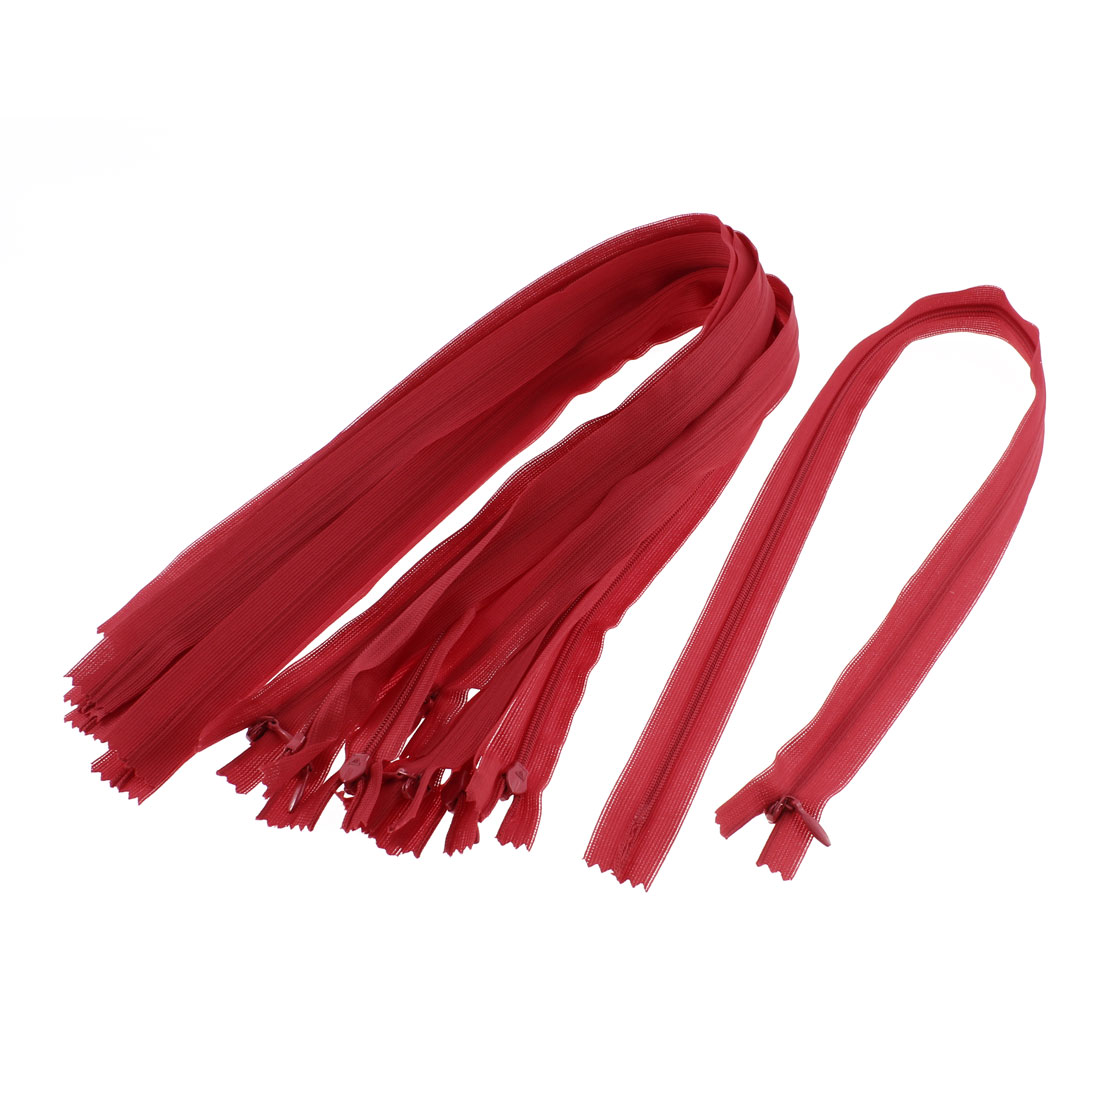 Dress Pants Closed End Nylon Zippers Tailor Sewing Craft Tool Red 55cm 10 Pcs